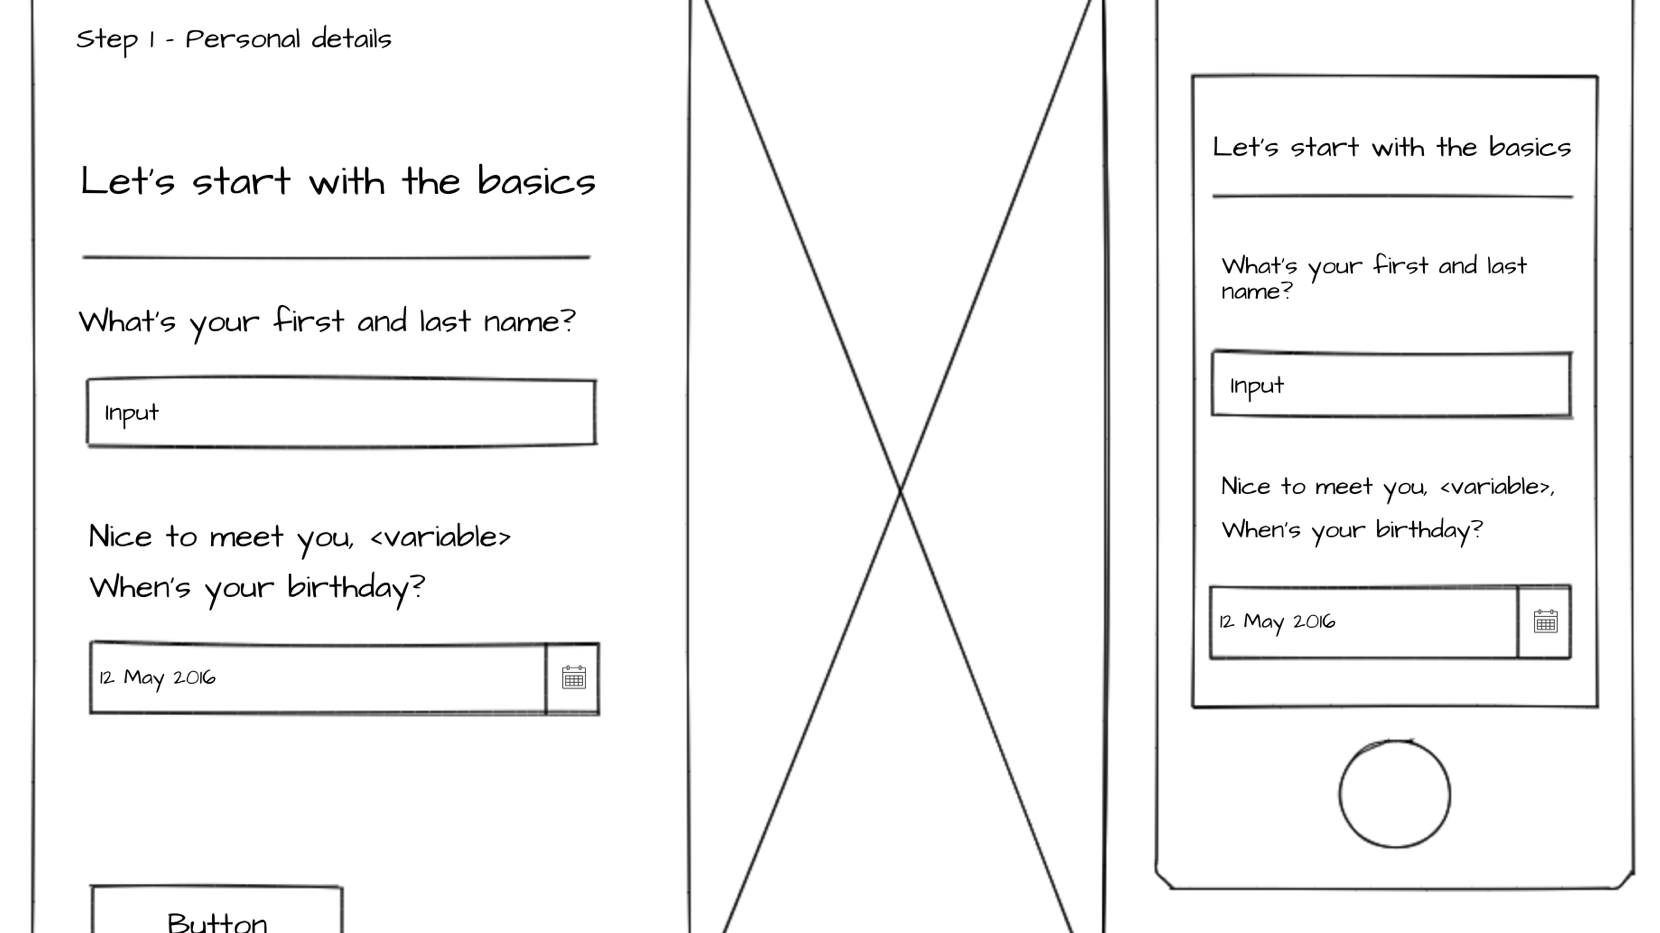 Johnny-Self-ui-application-wireframe-2.p